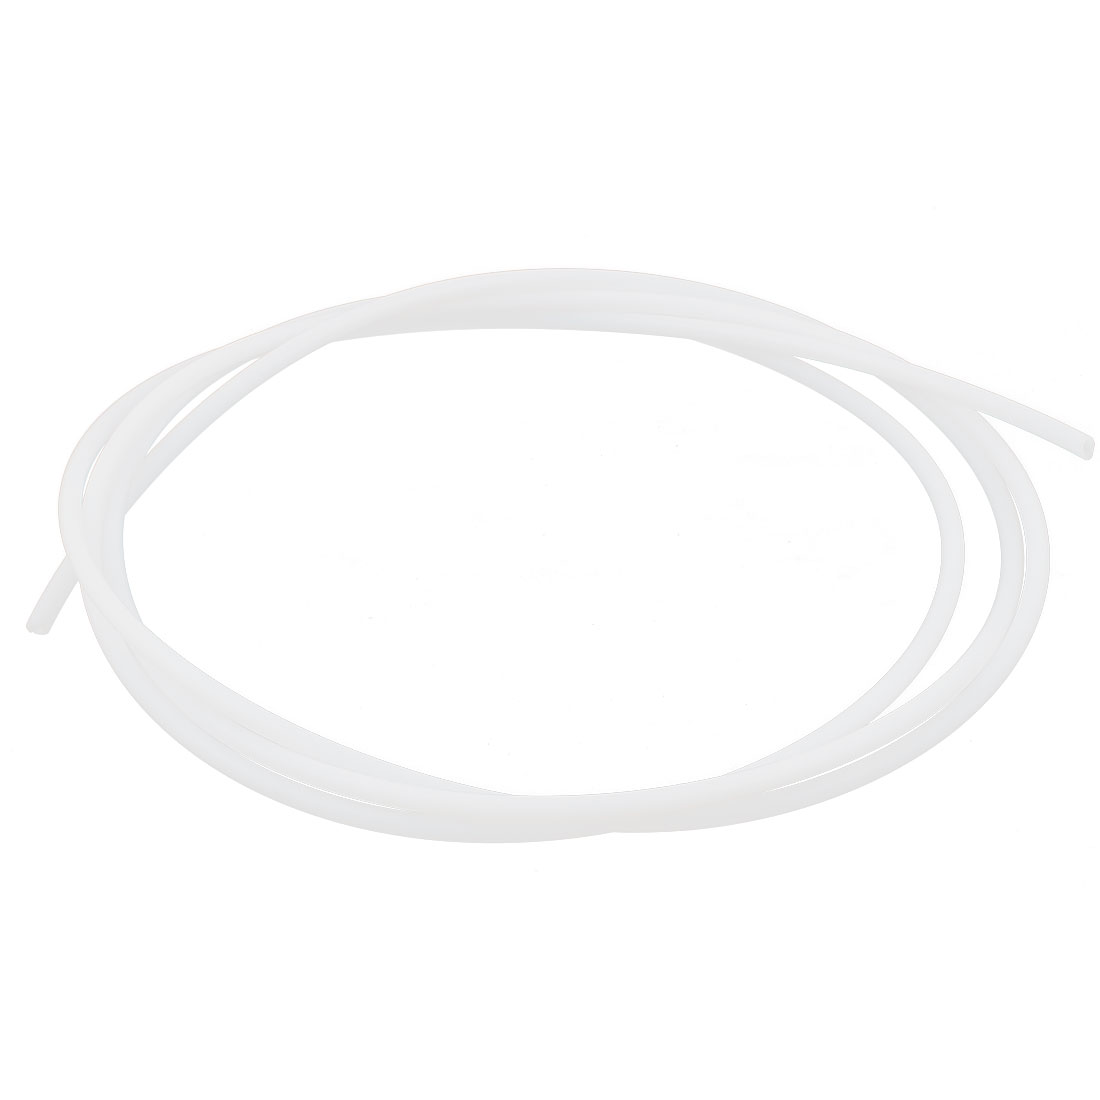 2M Length 1mm ID 2mm OD PTFE Tubing Tube Pipe for 3D Printer RepRap